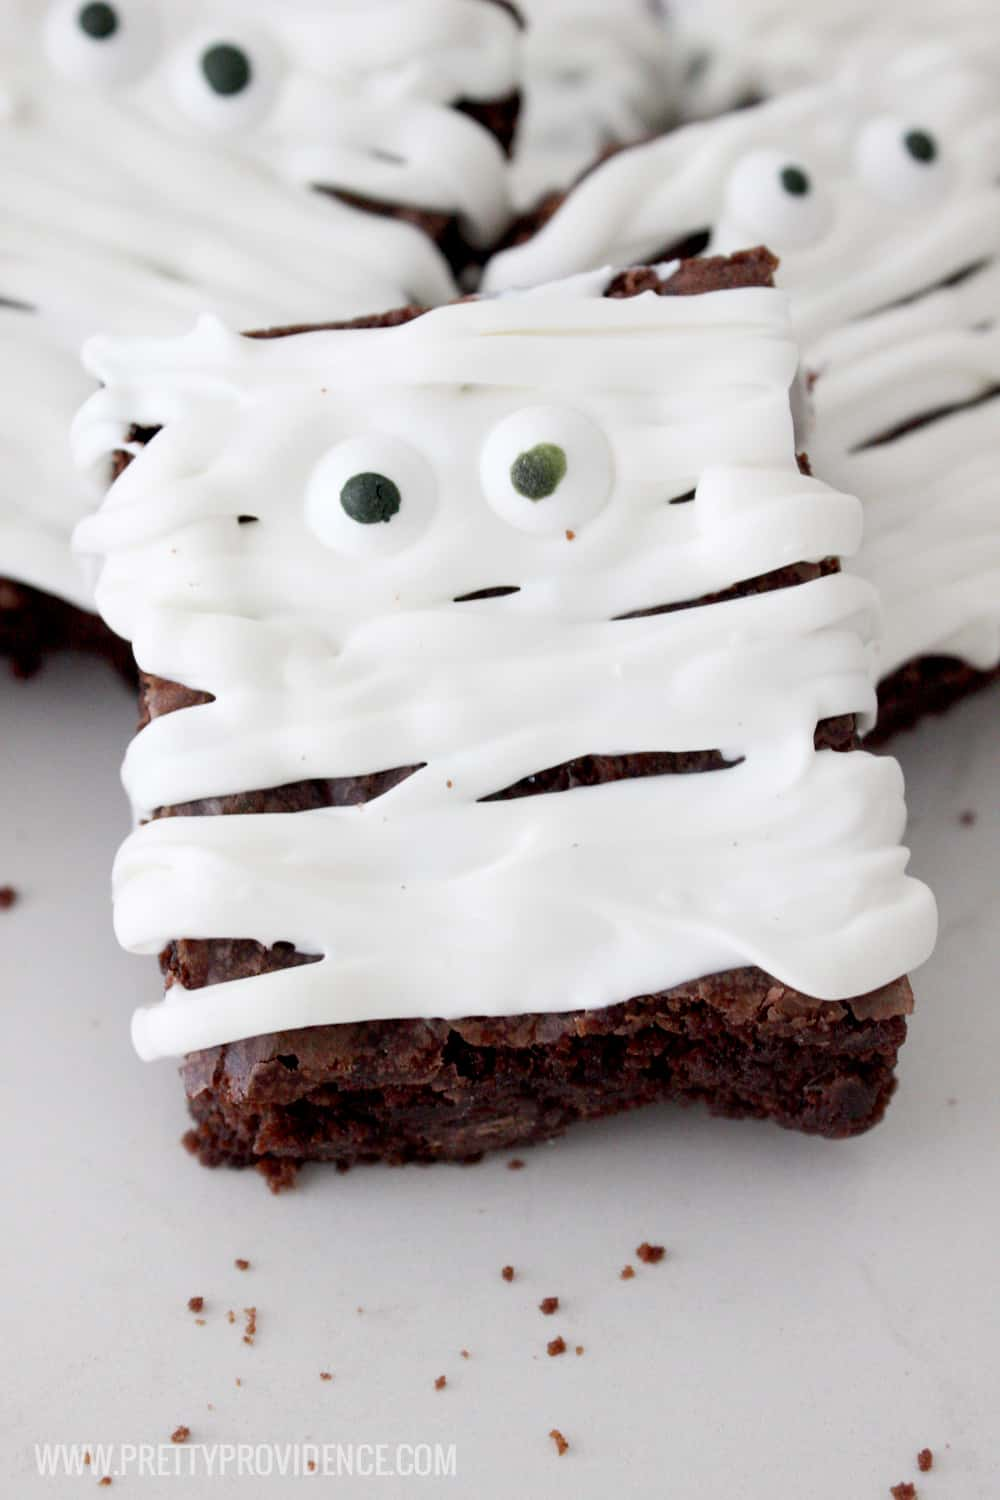 How to Make Mummy Brownies